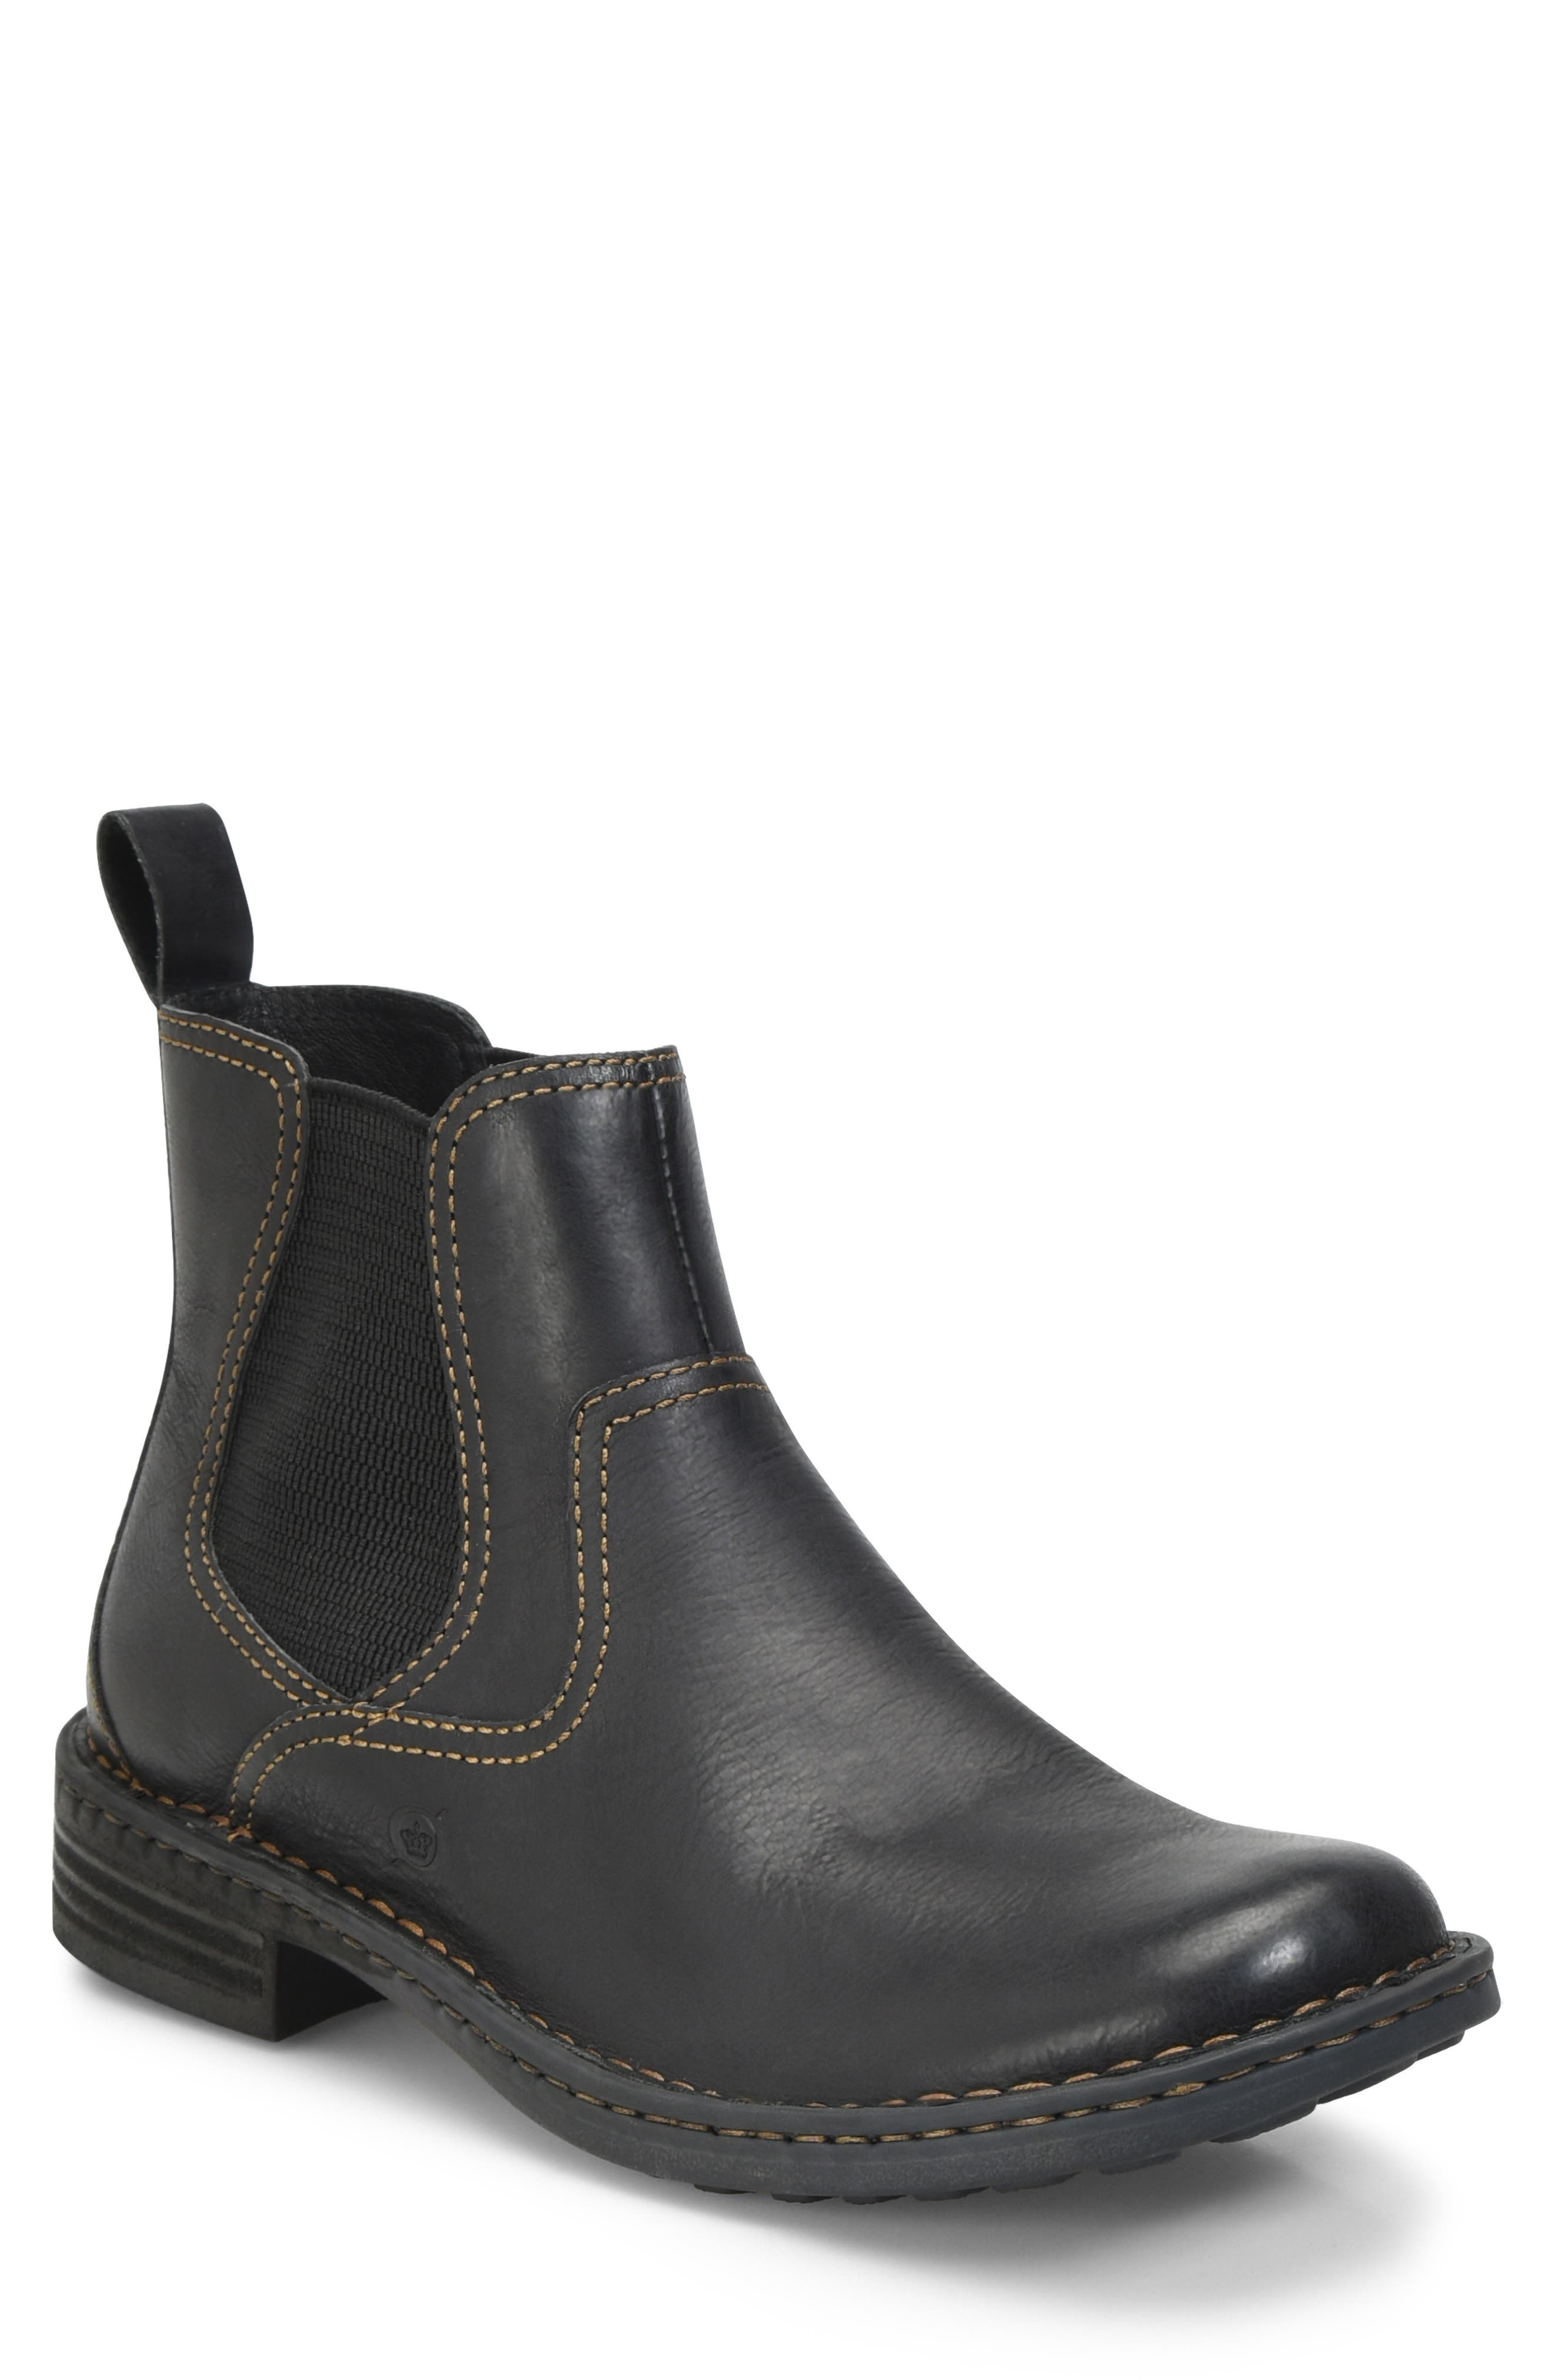 87a2b3321dc25 Mens Dress Boots